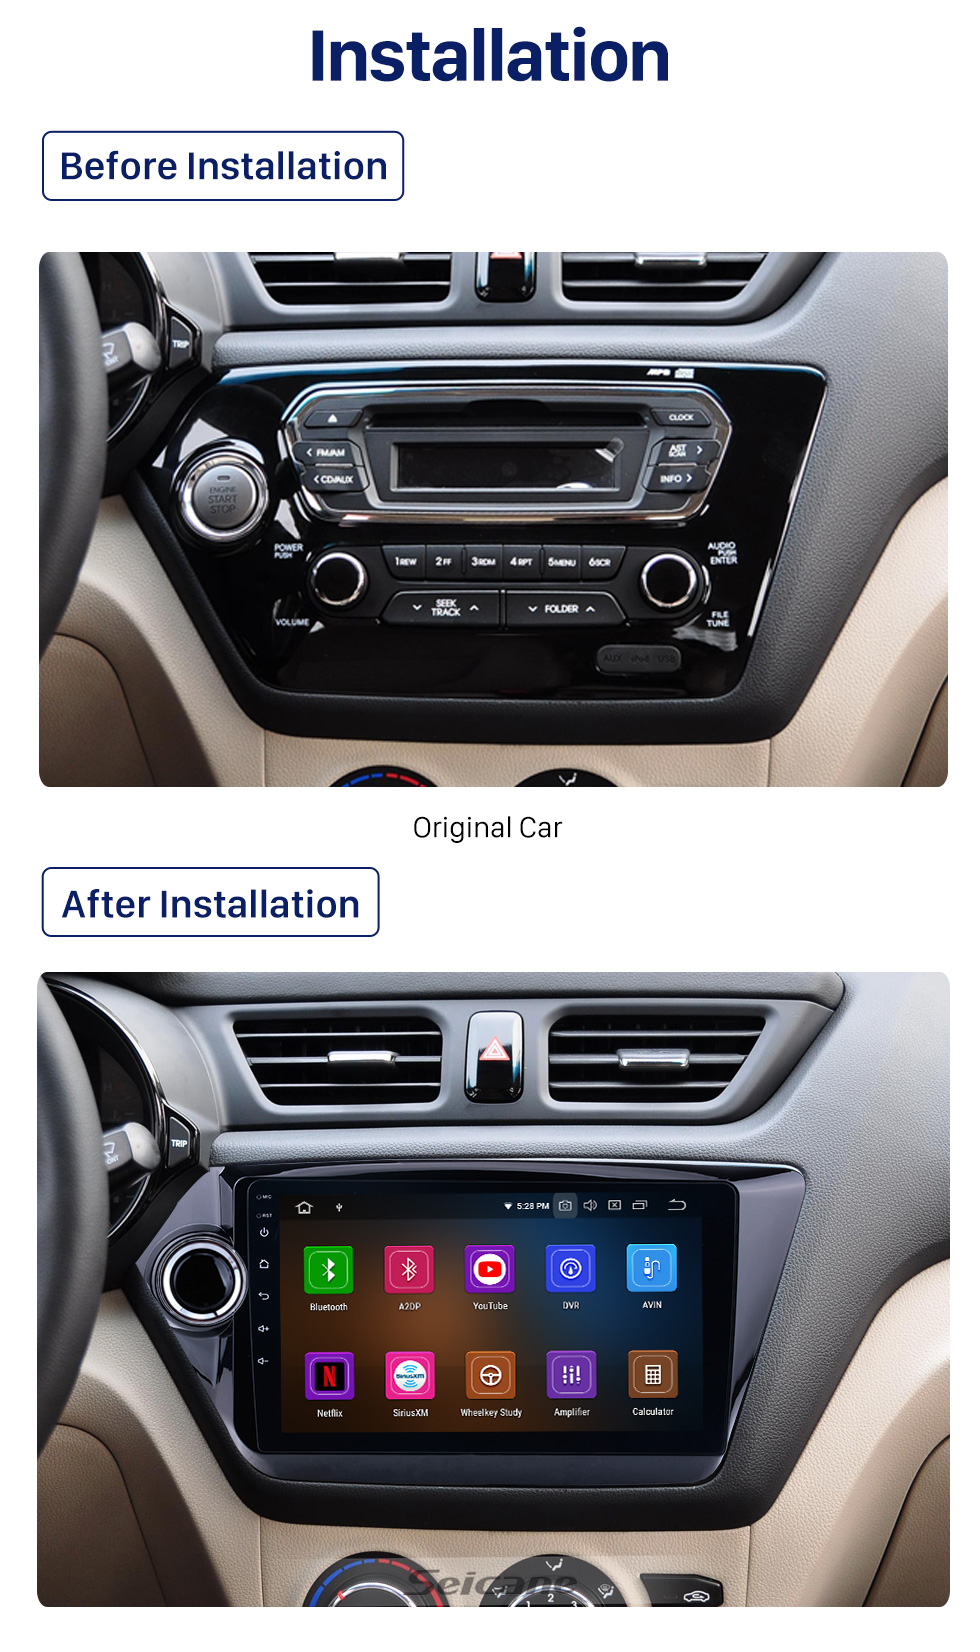 Seicane For 2011 2012 2013 2014 2015 Kia K2 RIO 9 inch Android 10.0 Car GPS Navigation System HD Touchscreen Radio AM FM Bluetooth support CD DVD Player OBD2 3G WiFi